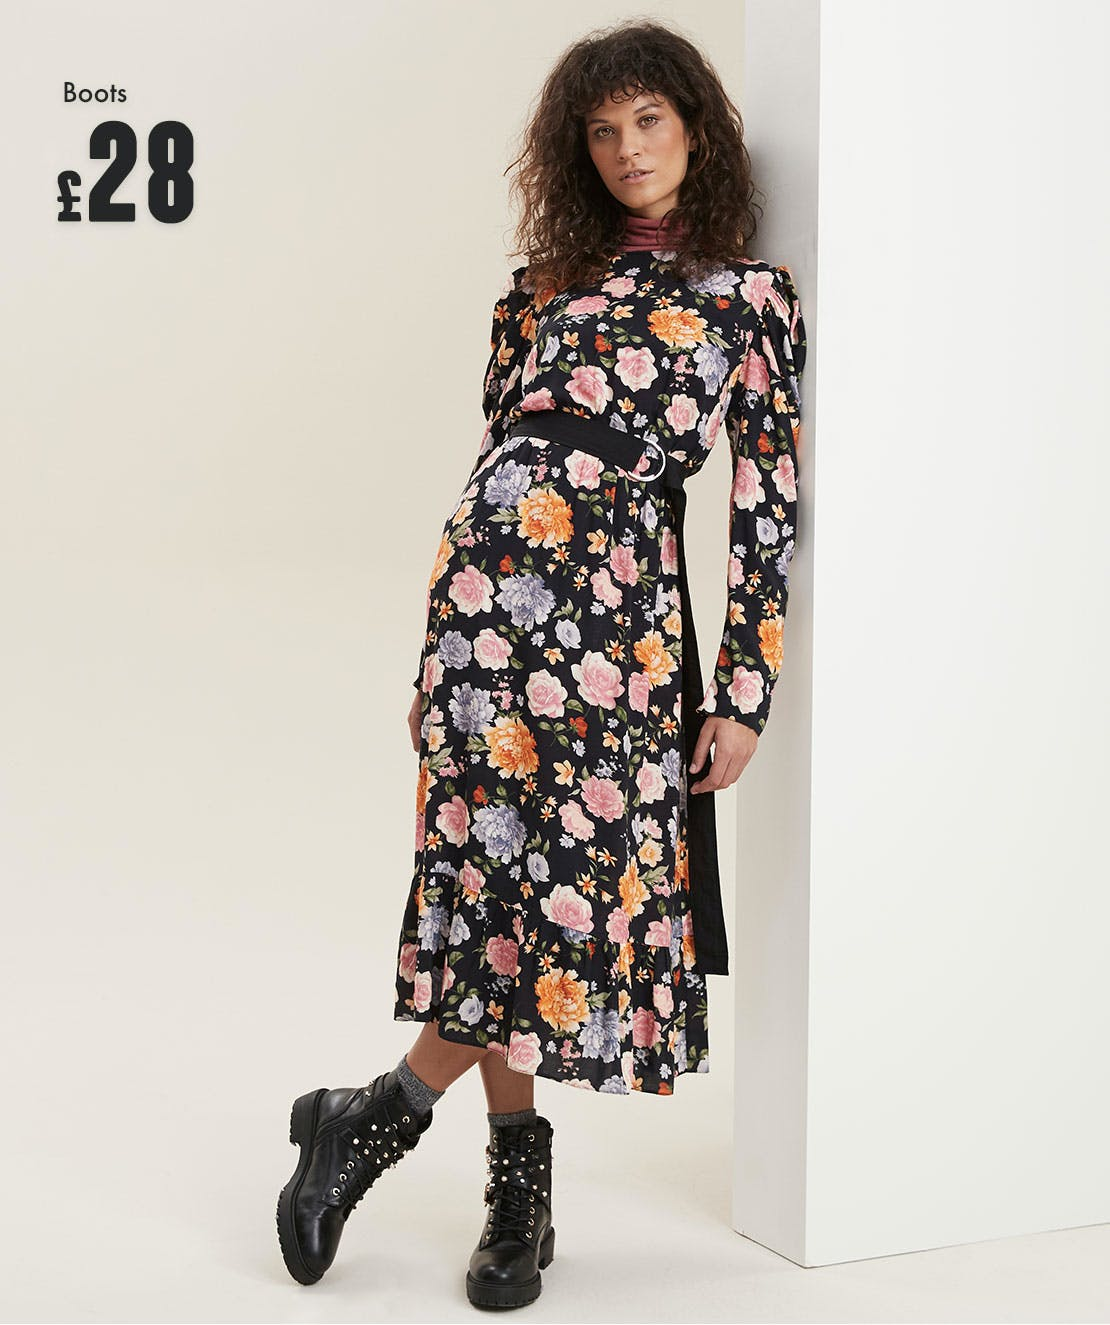 Boots Style Guide – Matalan